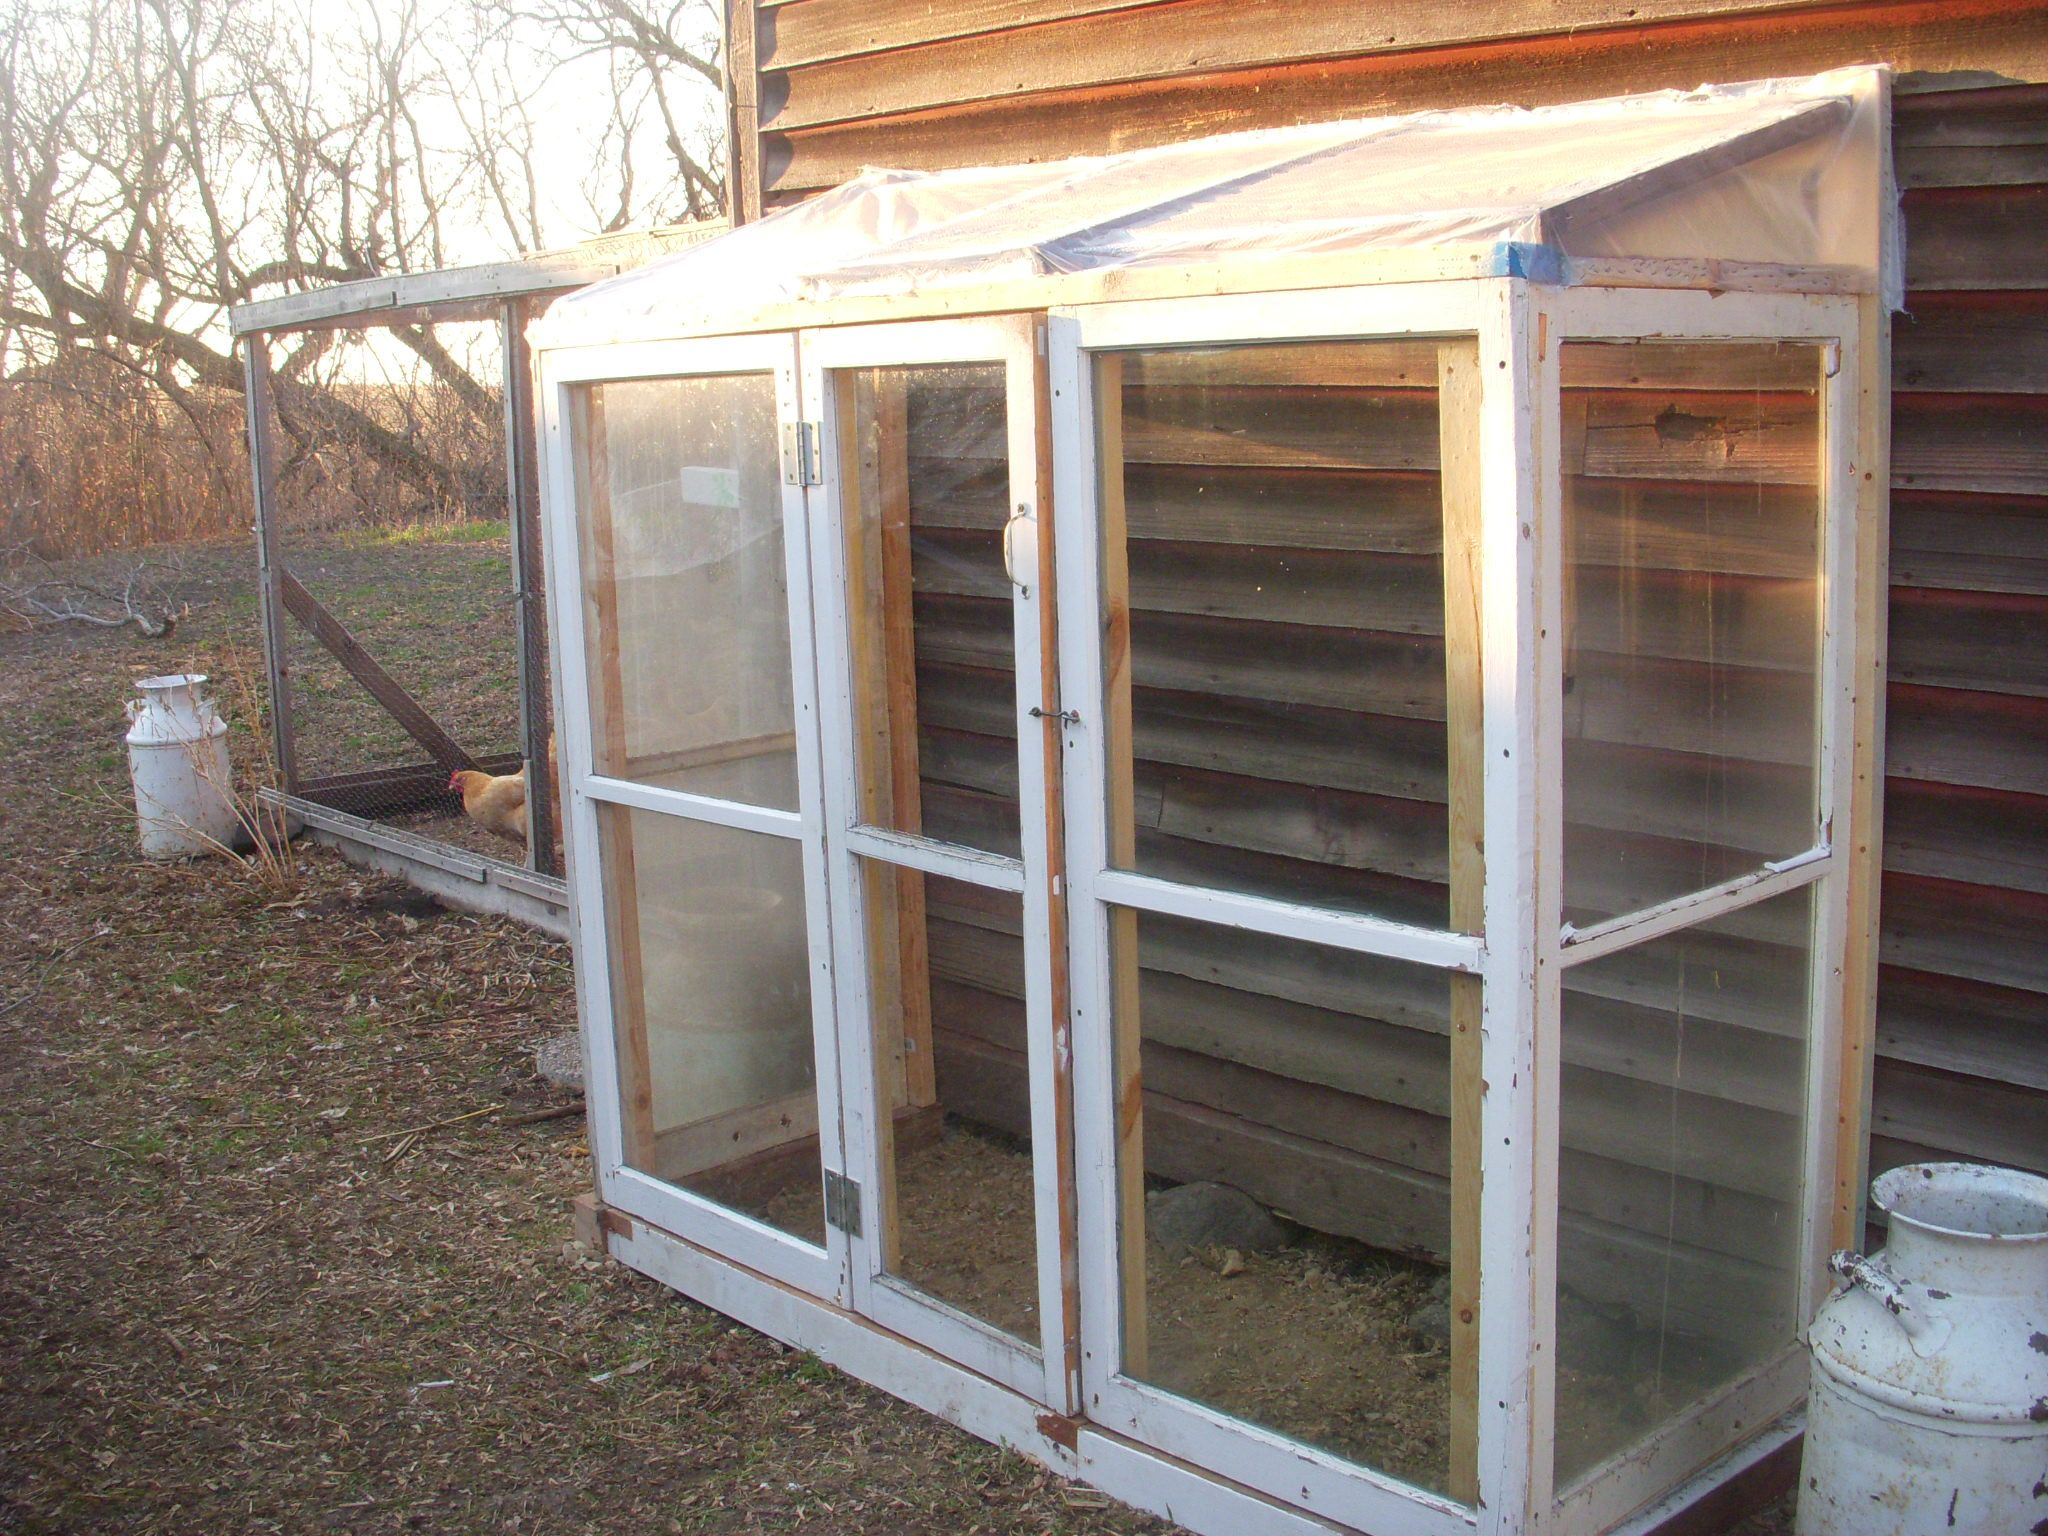 My cold frame green house built from recycles storm